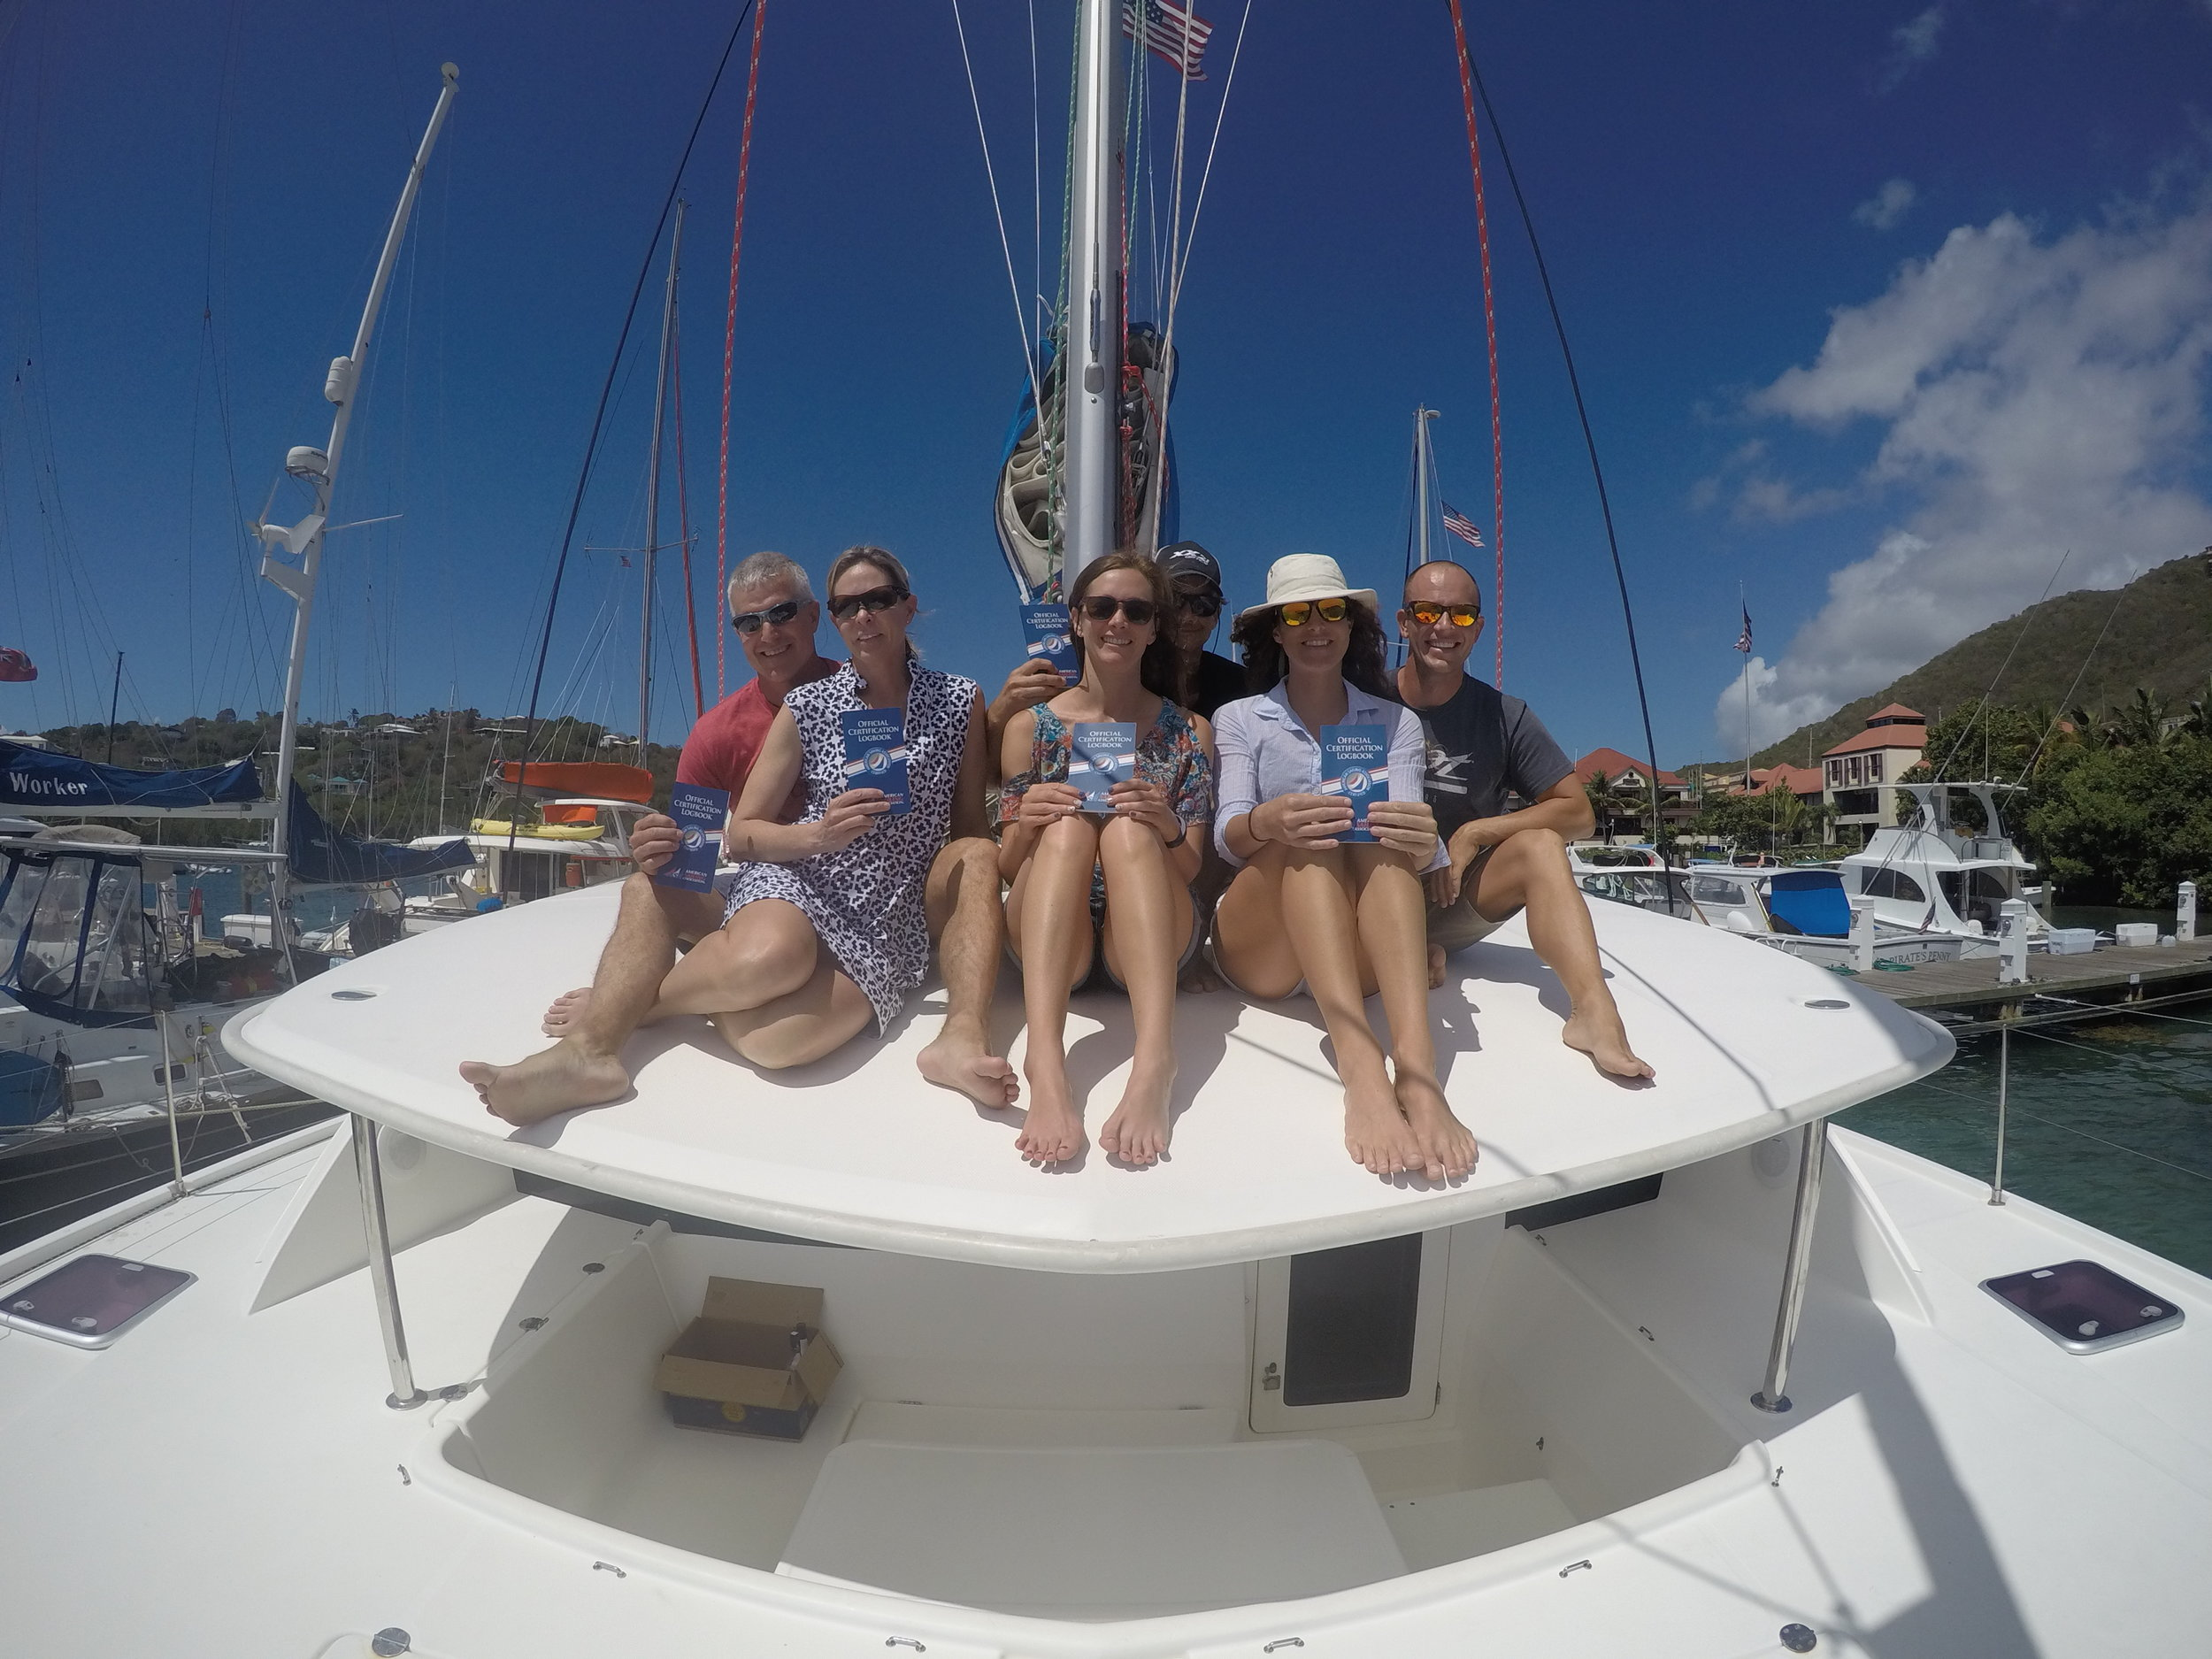 We all passed and are now certified to charter a catamaran.